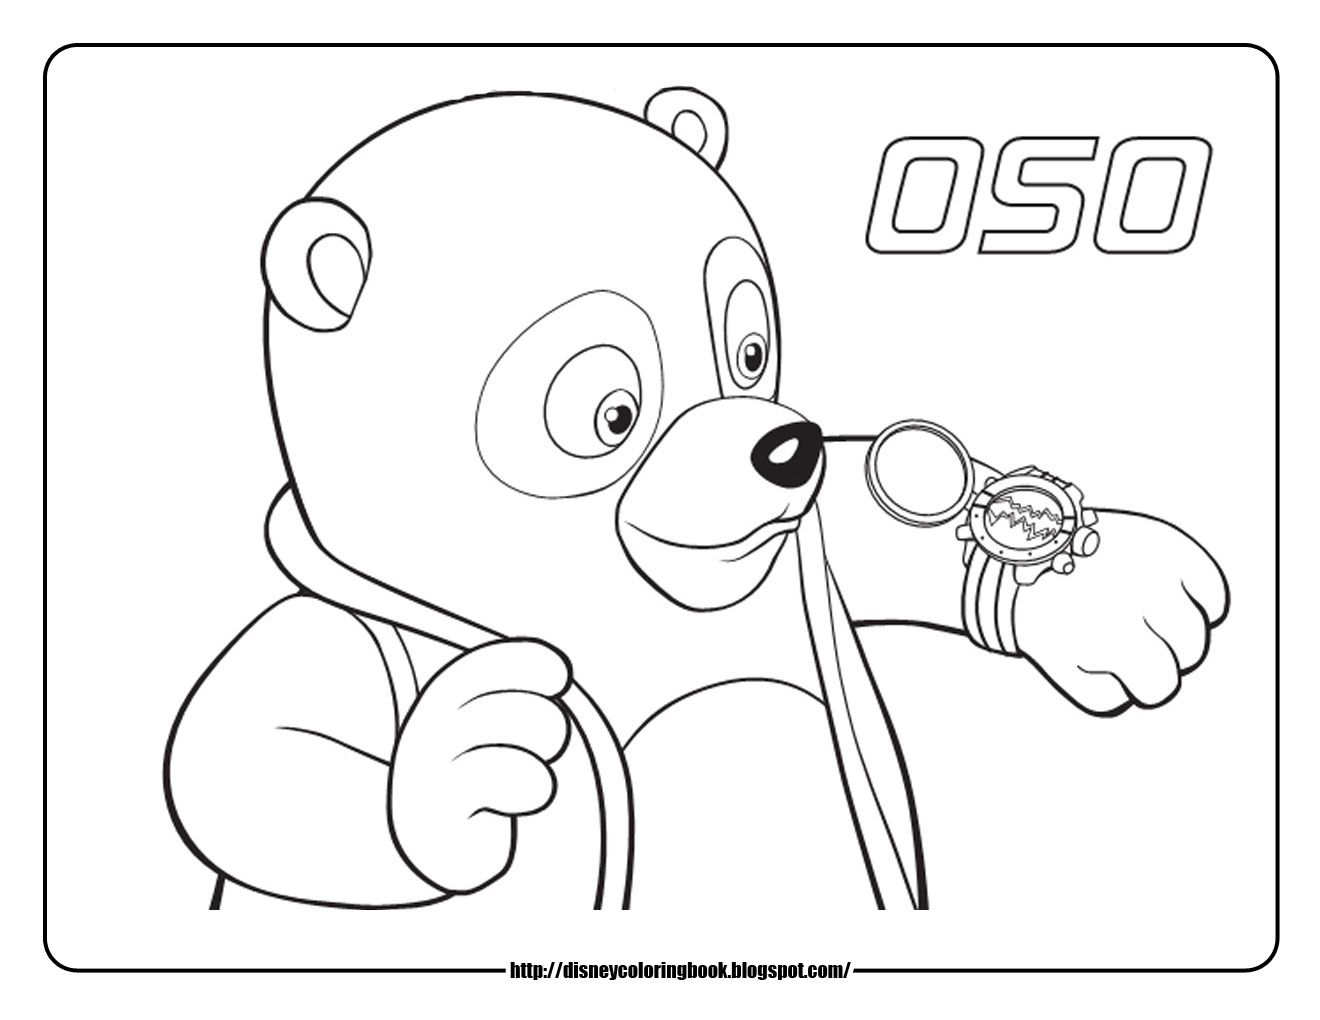 Disney Junior Coloring Pages  Special Agent Oso 18: Free Disney